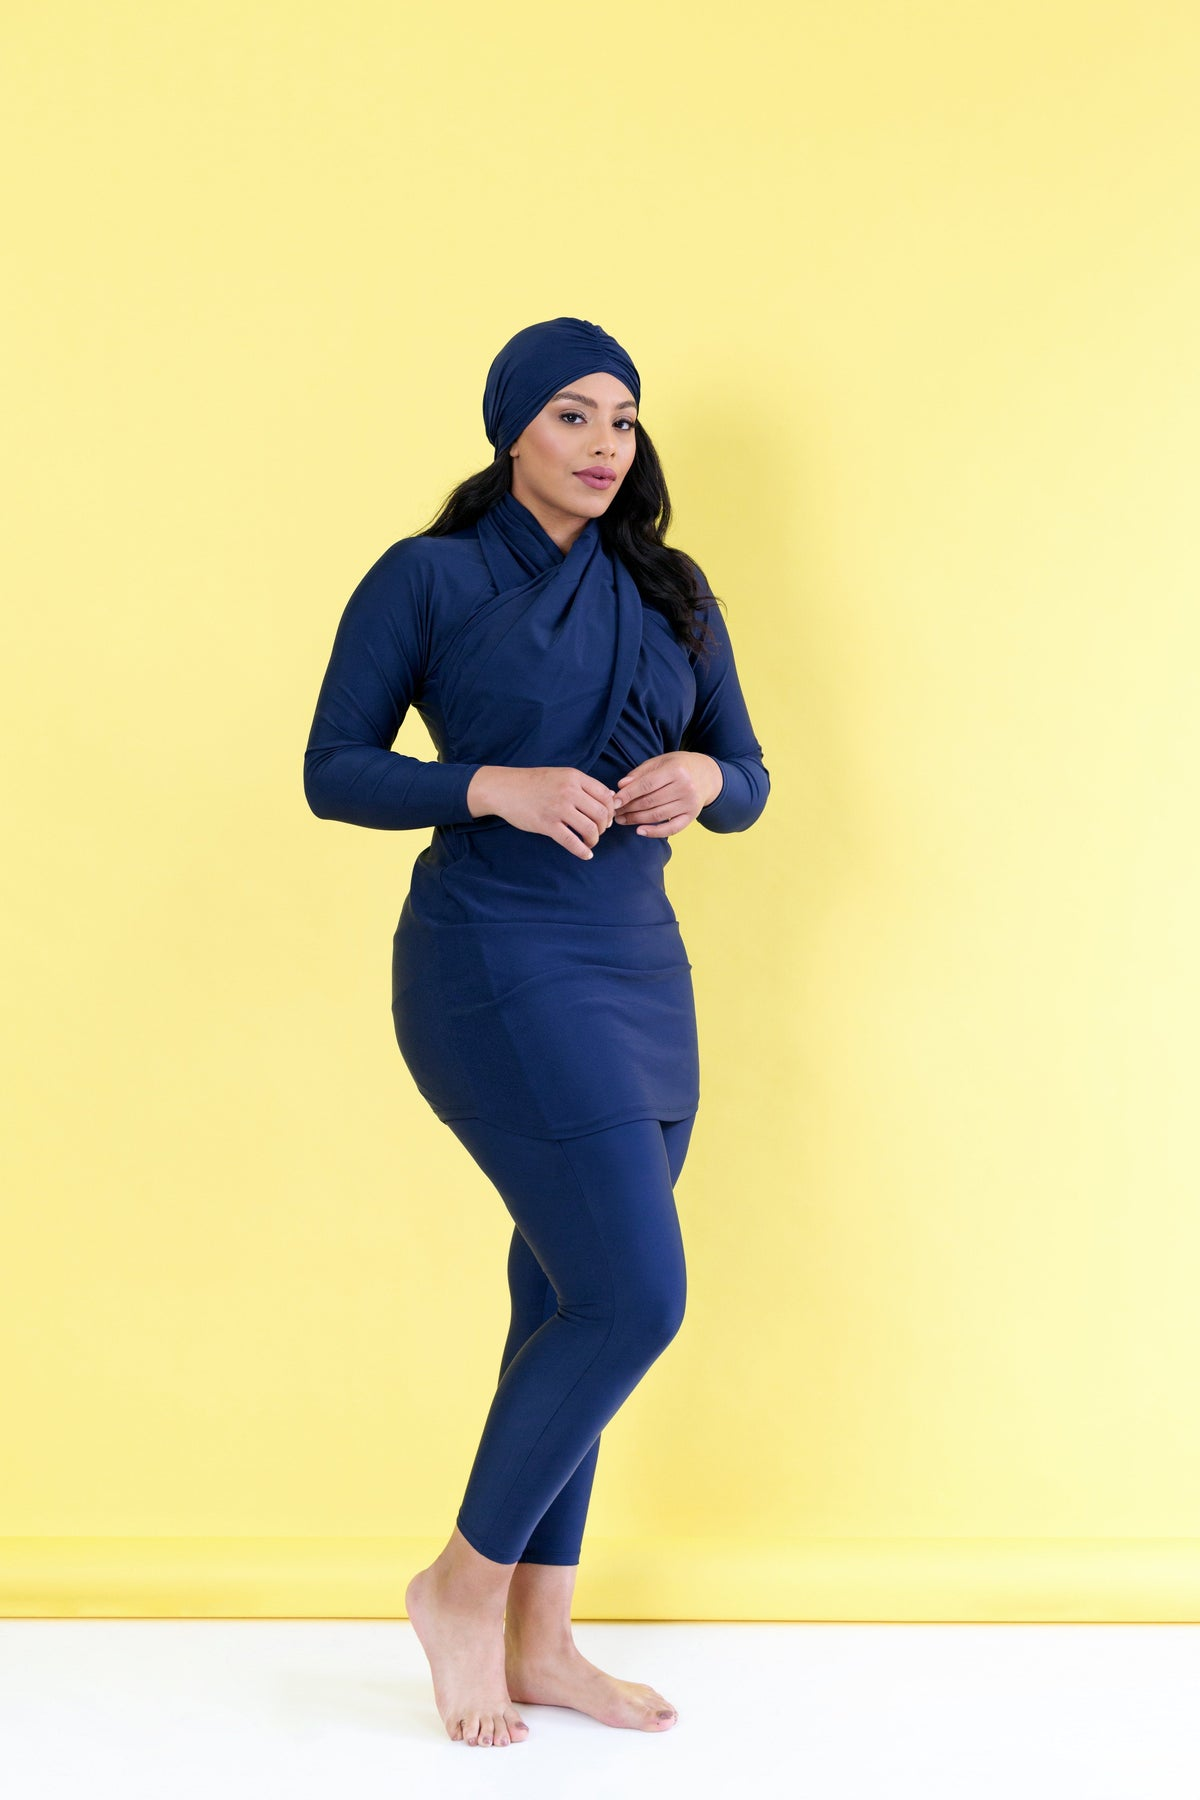 Plus Size Modest Swimwear